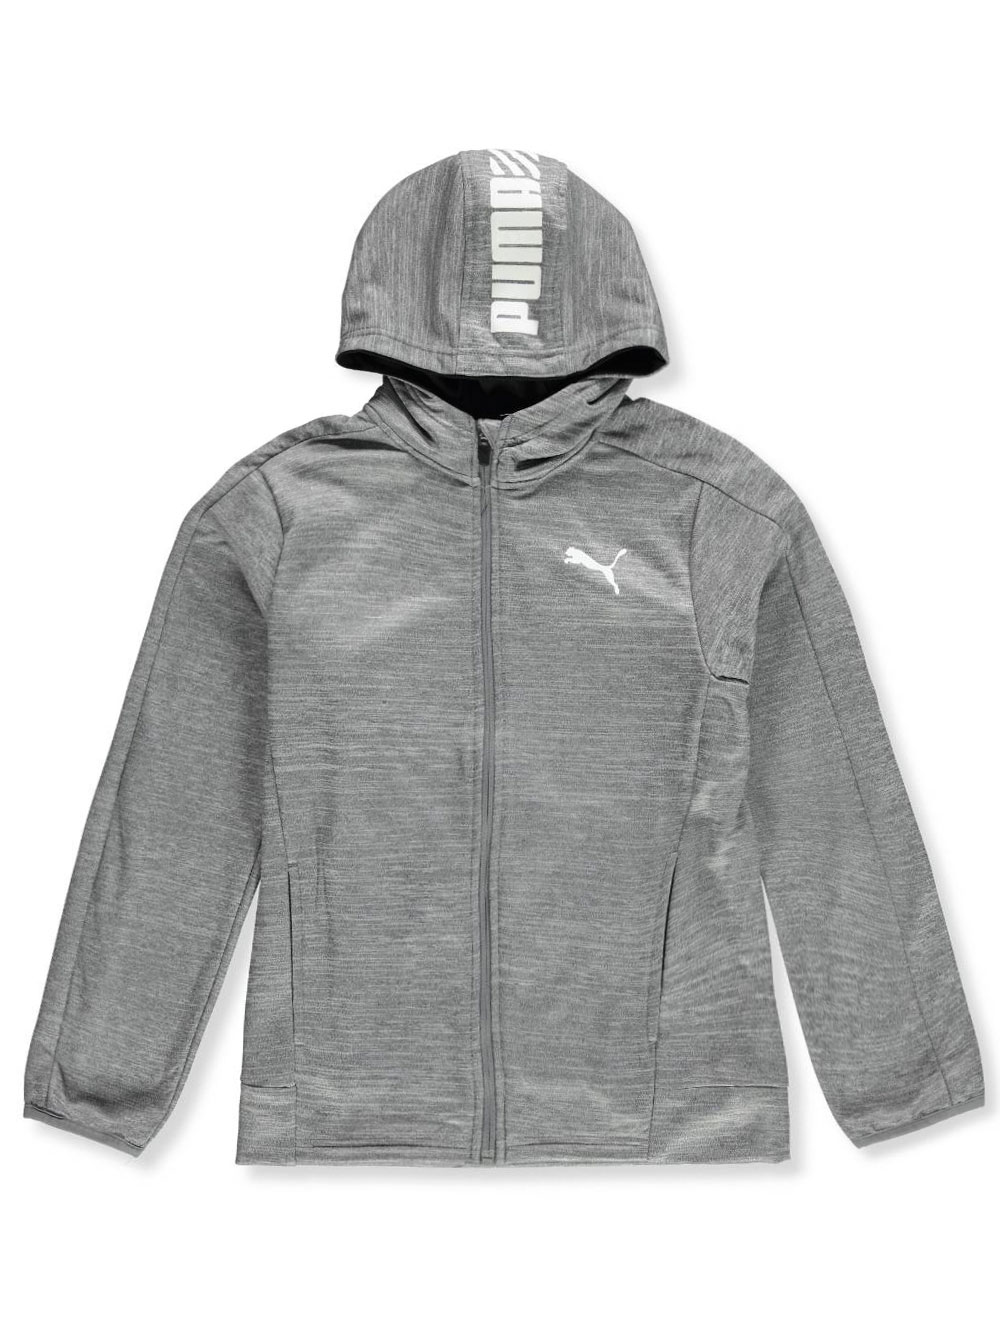 62a17cbe5c6a Boys' Tricot Hoodie by Puma in Charcoal heather